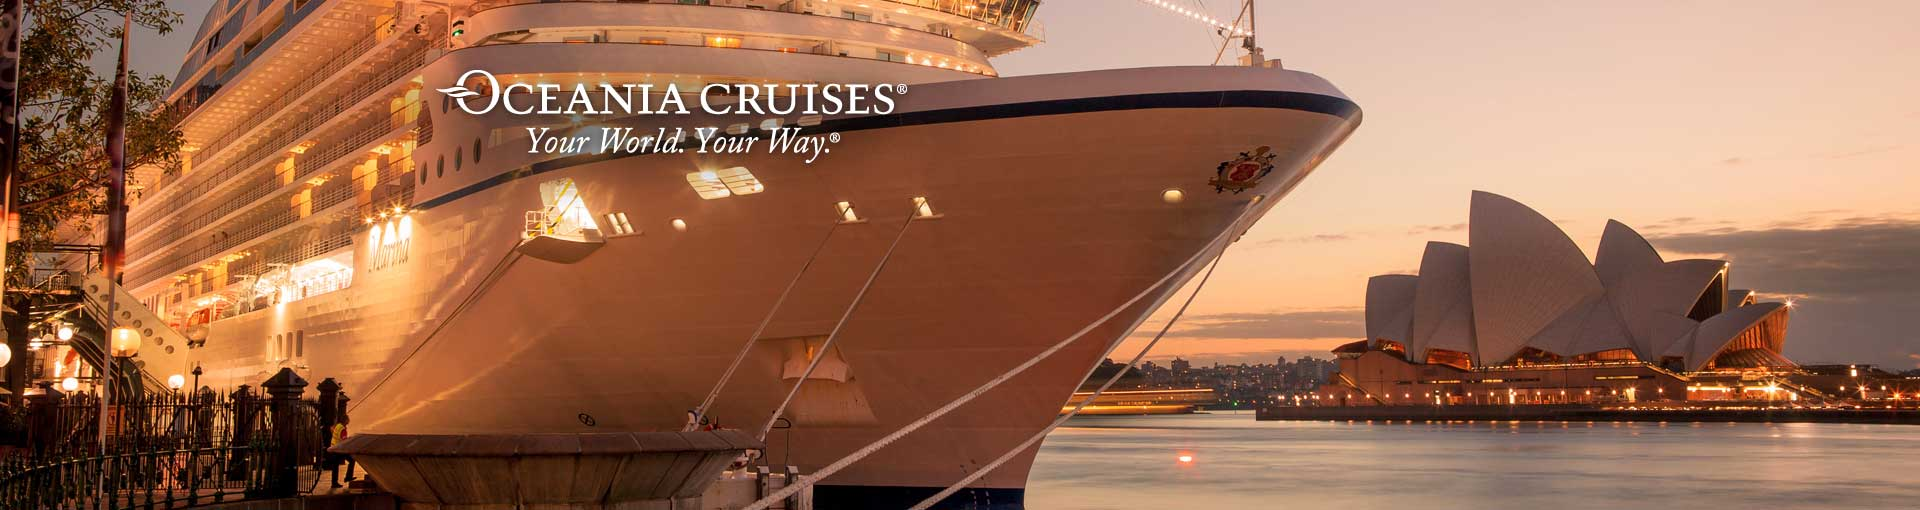 Oceania Cruises, 2017 and 2018 Cruise Deals, Destinations, Ships ...